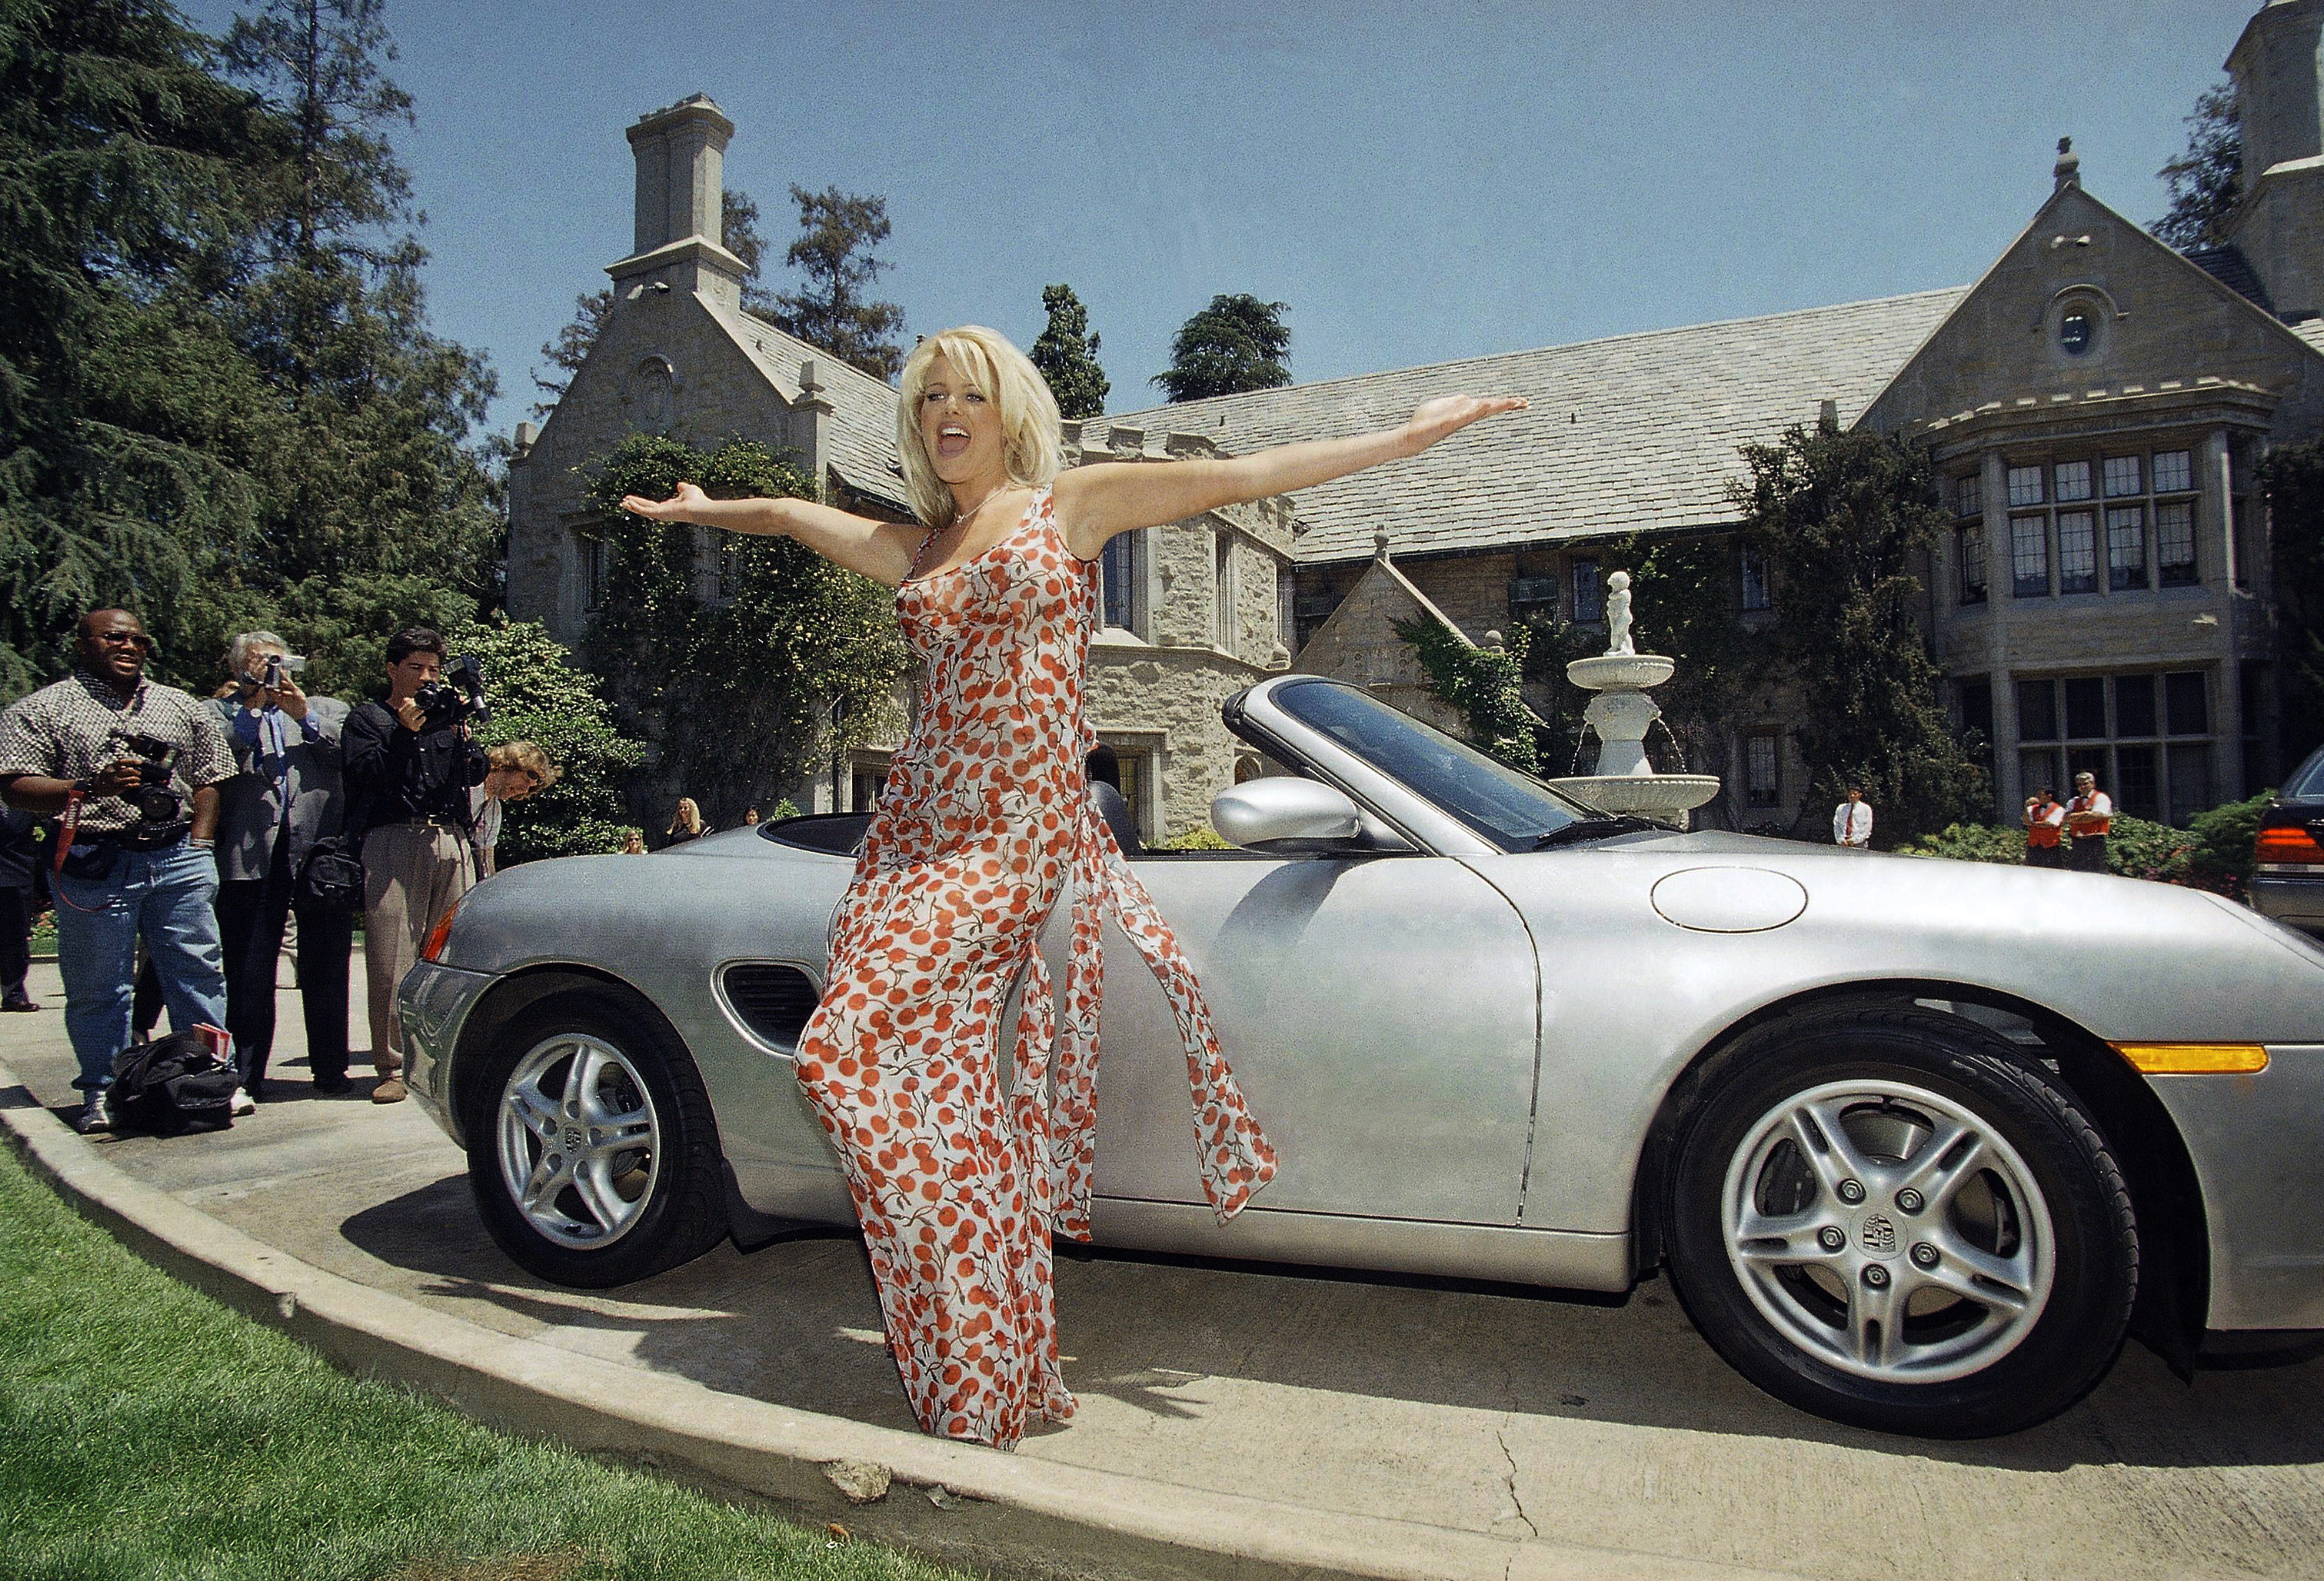 File photo of Victoria Silvstedt poses with her brand new Porsche in front of the Playboy Mansion in Beverly Hills, California on Monday, January 11, 2016. Photo: AP